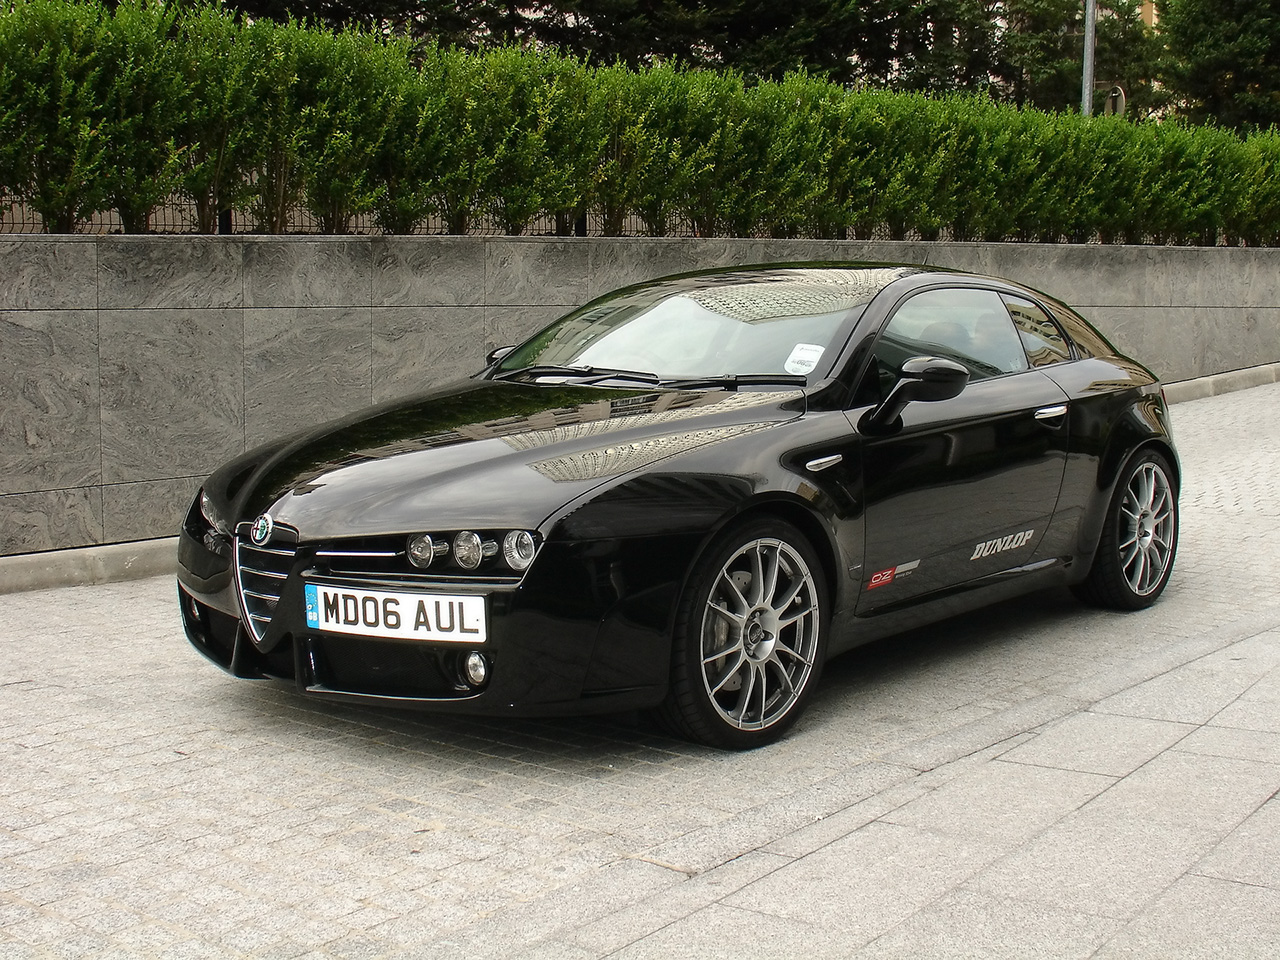 Alfa romeo 8 photo - 1